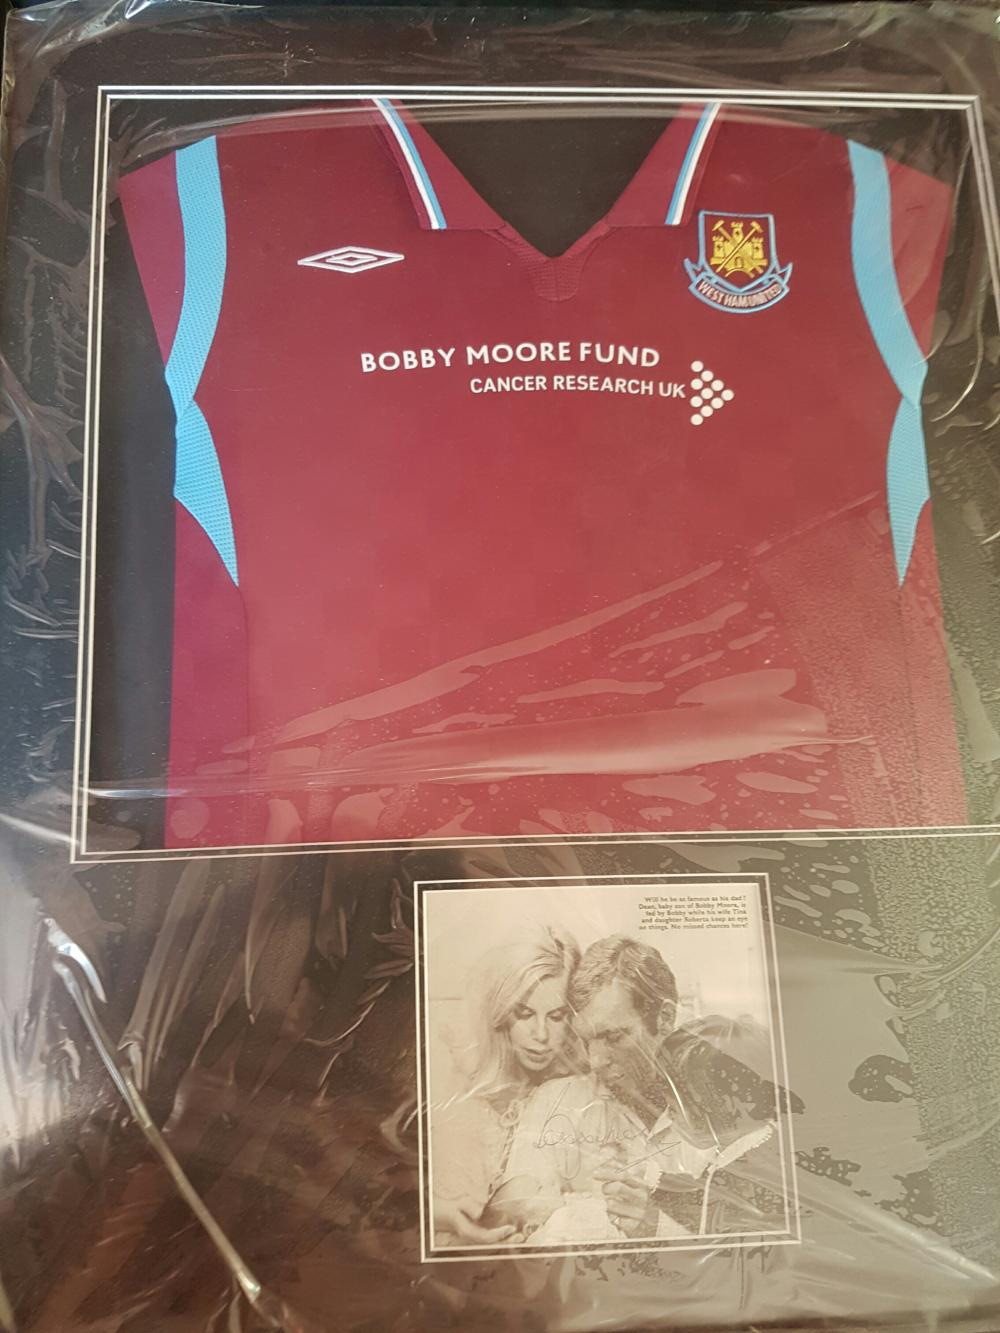 Lot 21 - Framed West Ham Shirt along with a Signed picture of England World Cup 1966 Winner Bobby Moore (Holding his Baby) - Robert Frederick Chelsea Moore OBE (12 April 1941 24 February 1993) was an English professional footballer. He captained